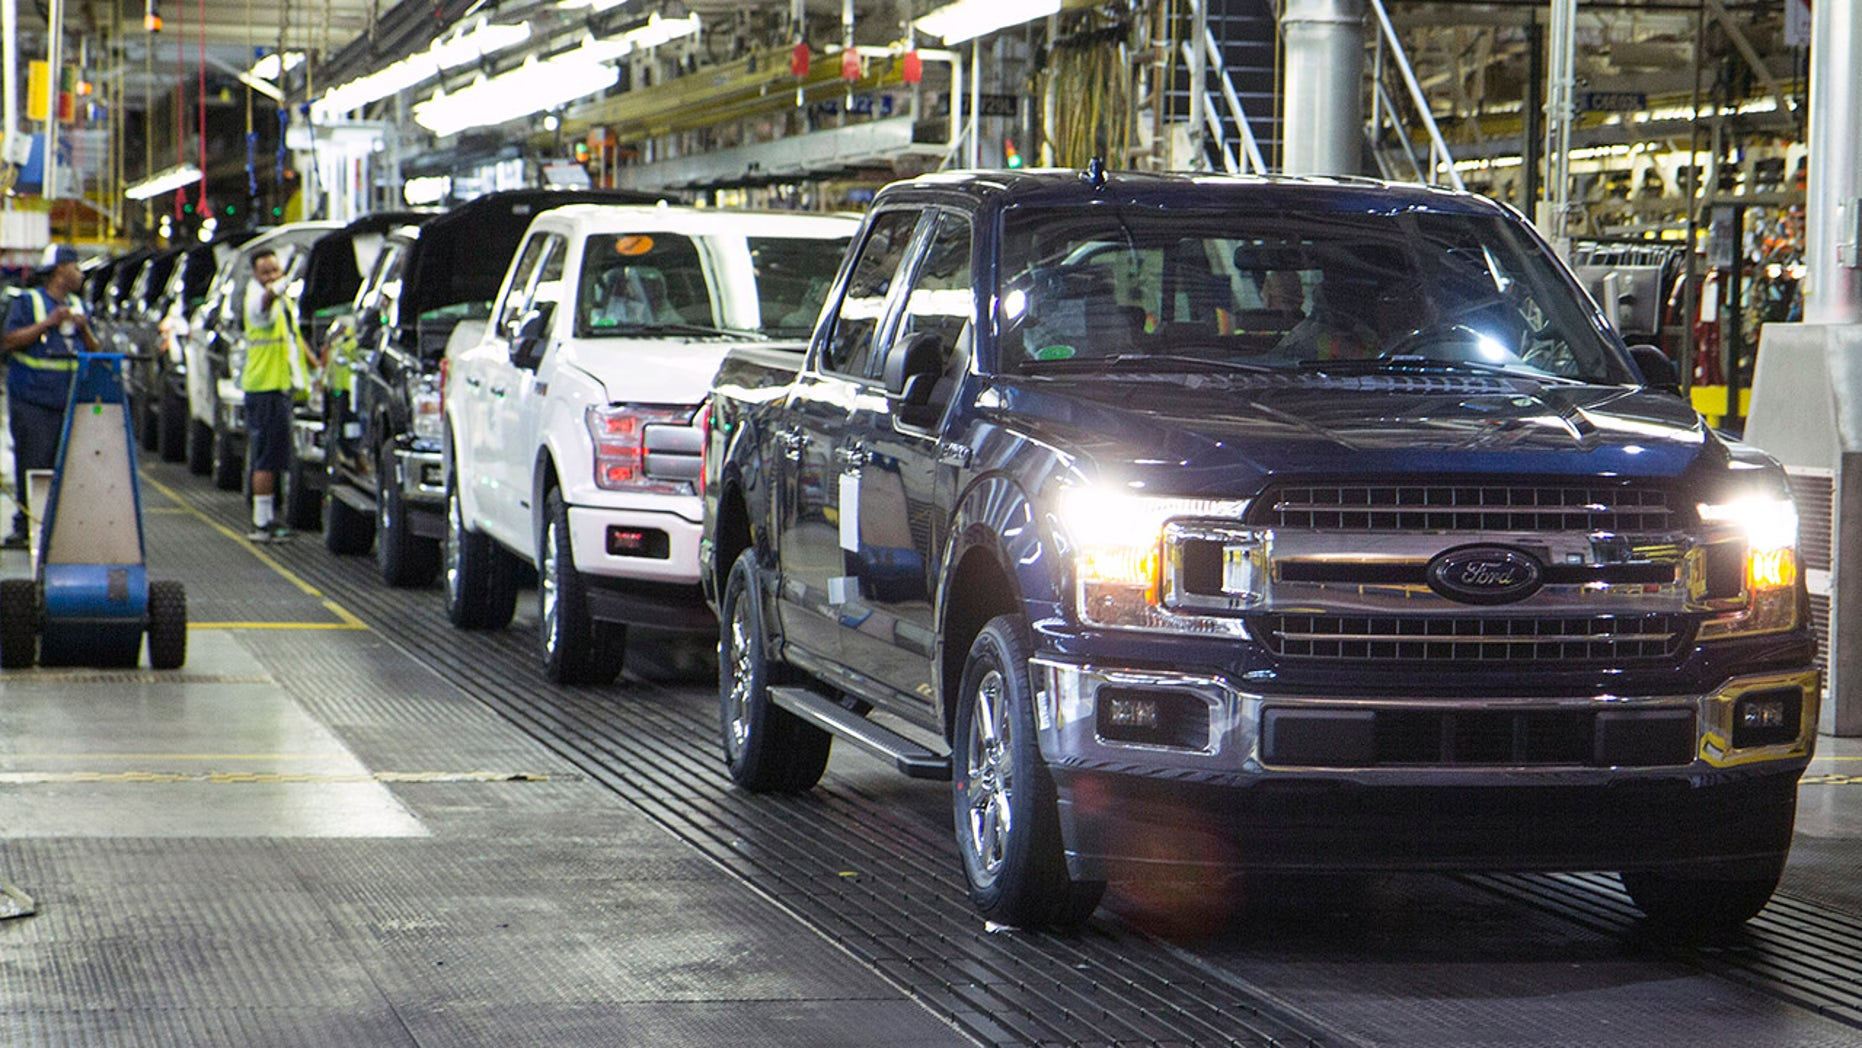 The First Ford F 150 Truck Rolls Off Line This Morning At Dearborn